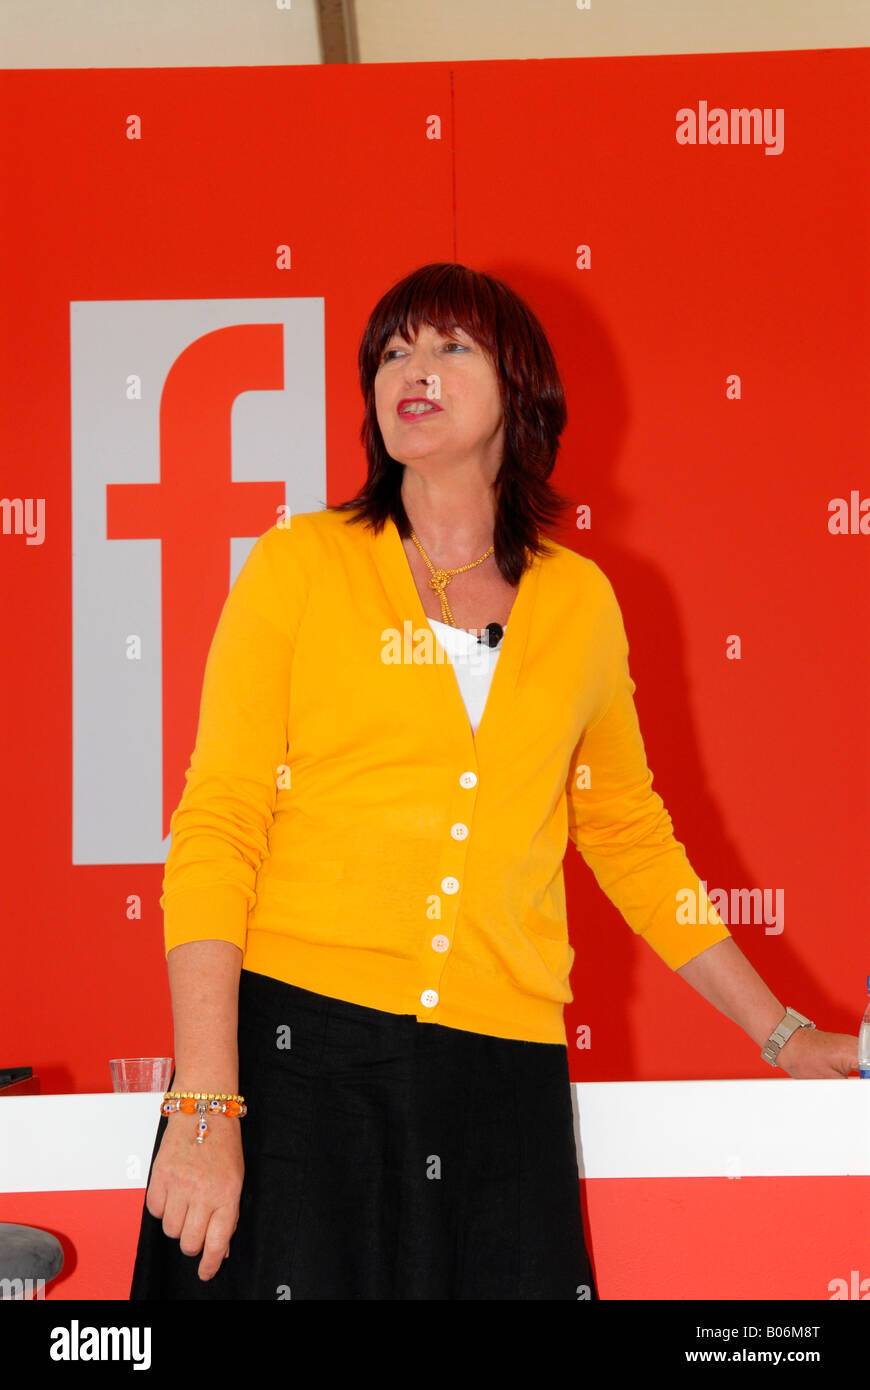 The f Word Live stand  journalist Janet Street-Porter gives hilariously witty talk on her pet hates when visiting - Stock Image